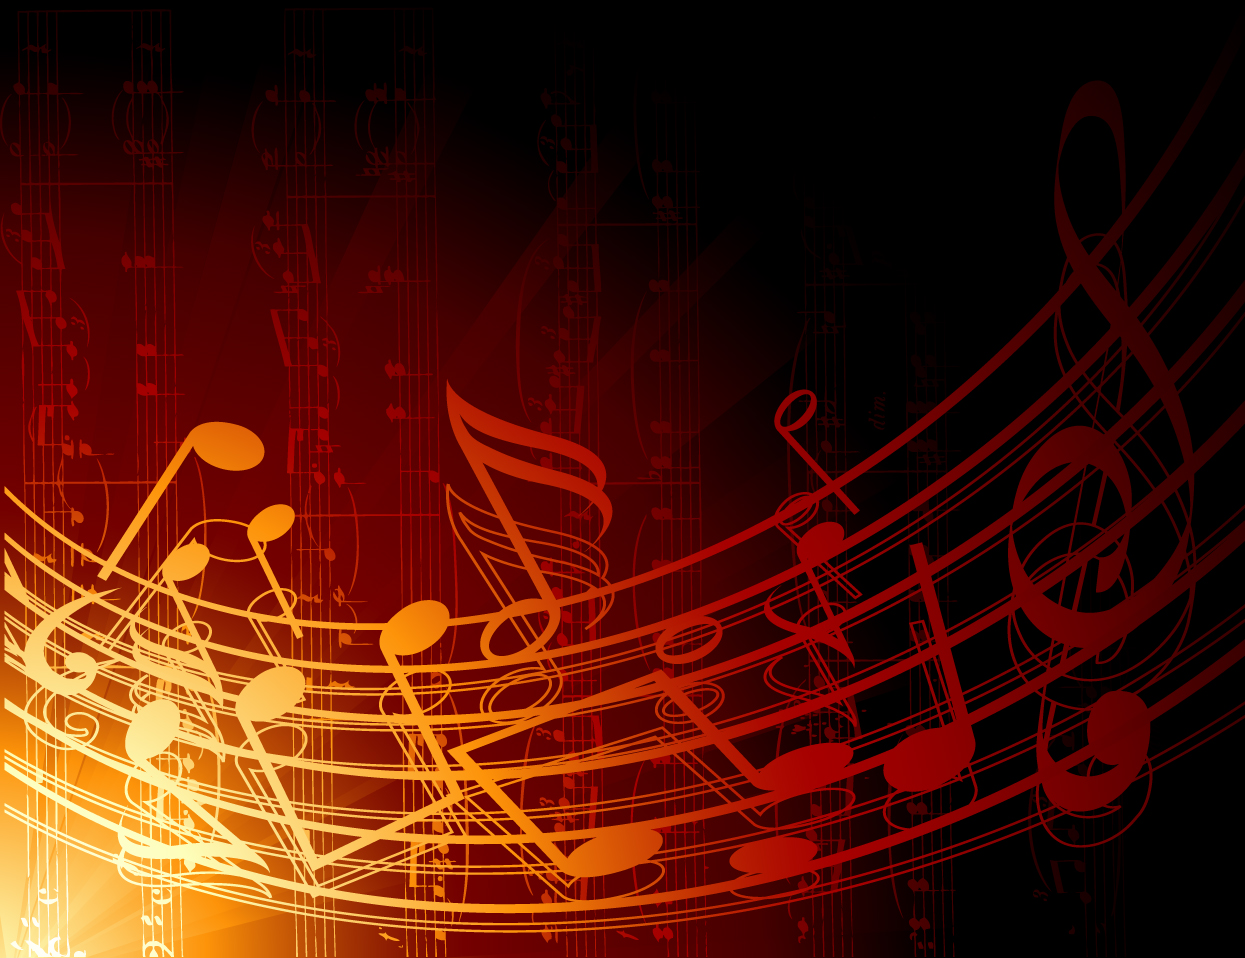 Free download Music Abstract Backgrounds 4009 Wallpaper